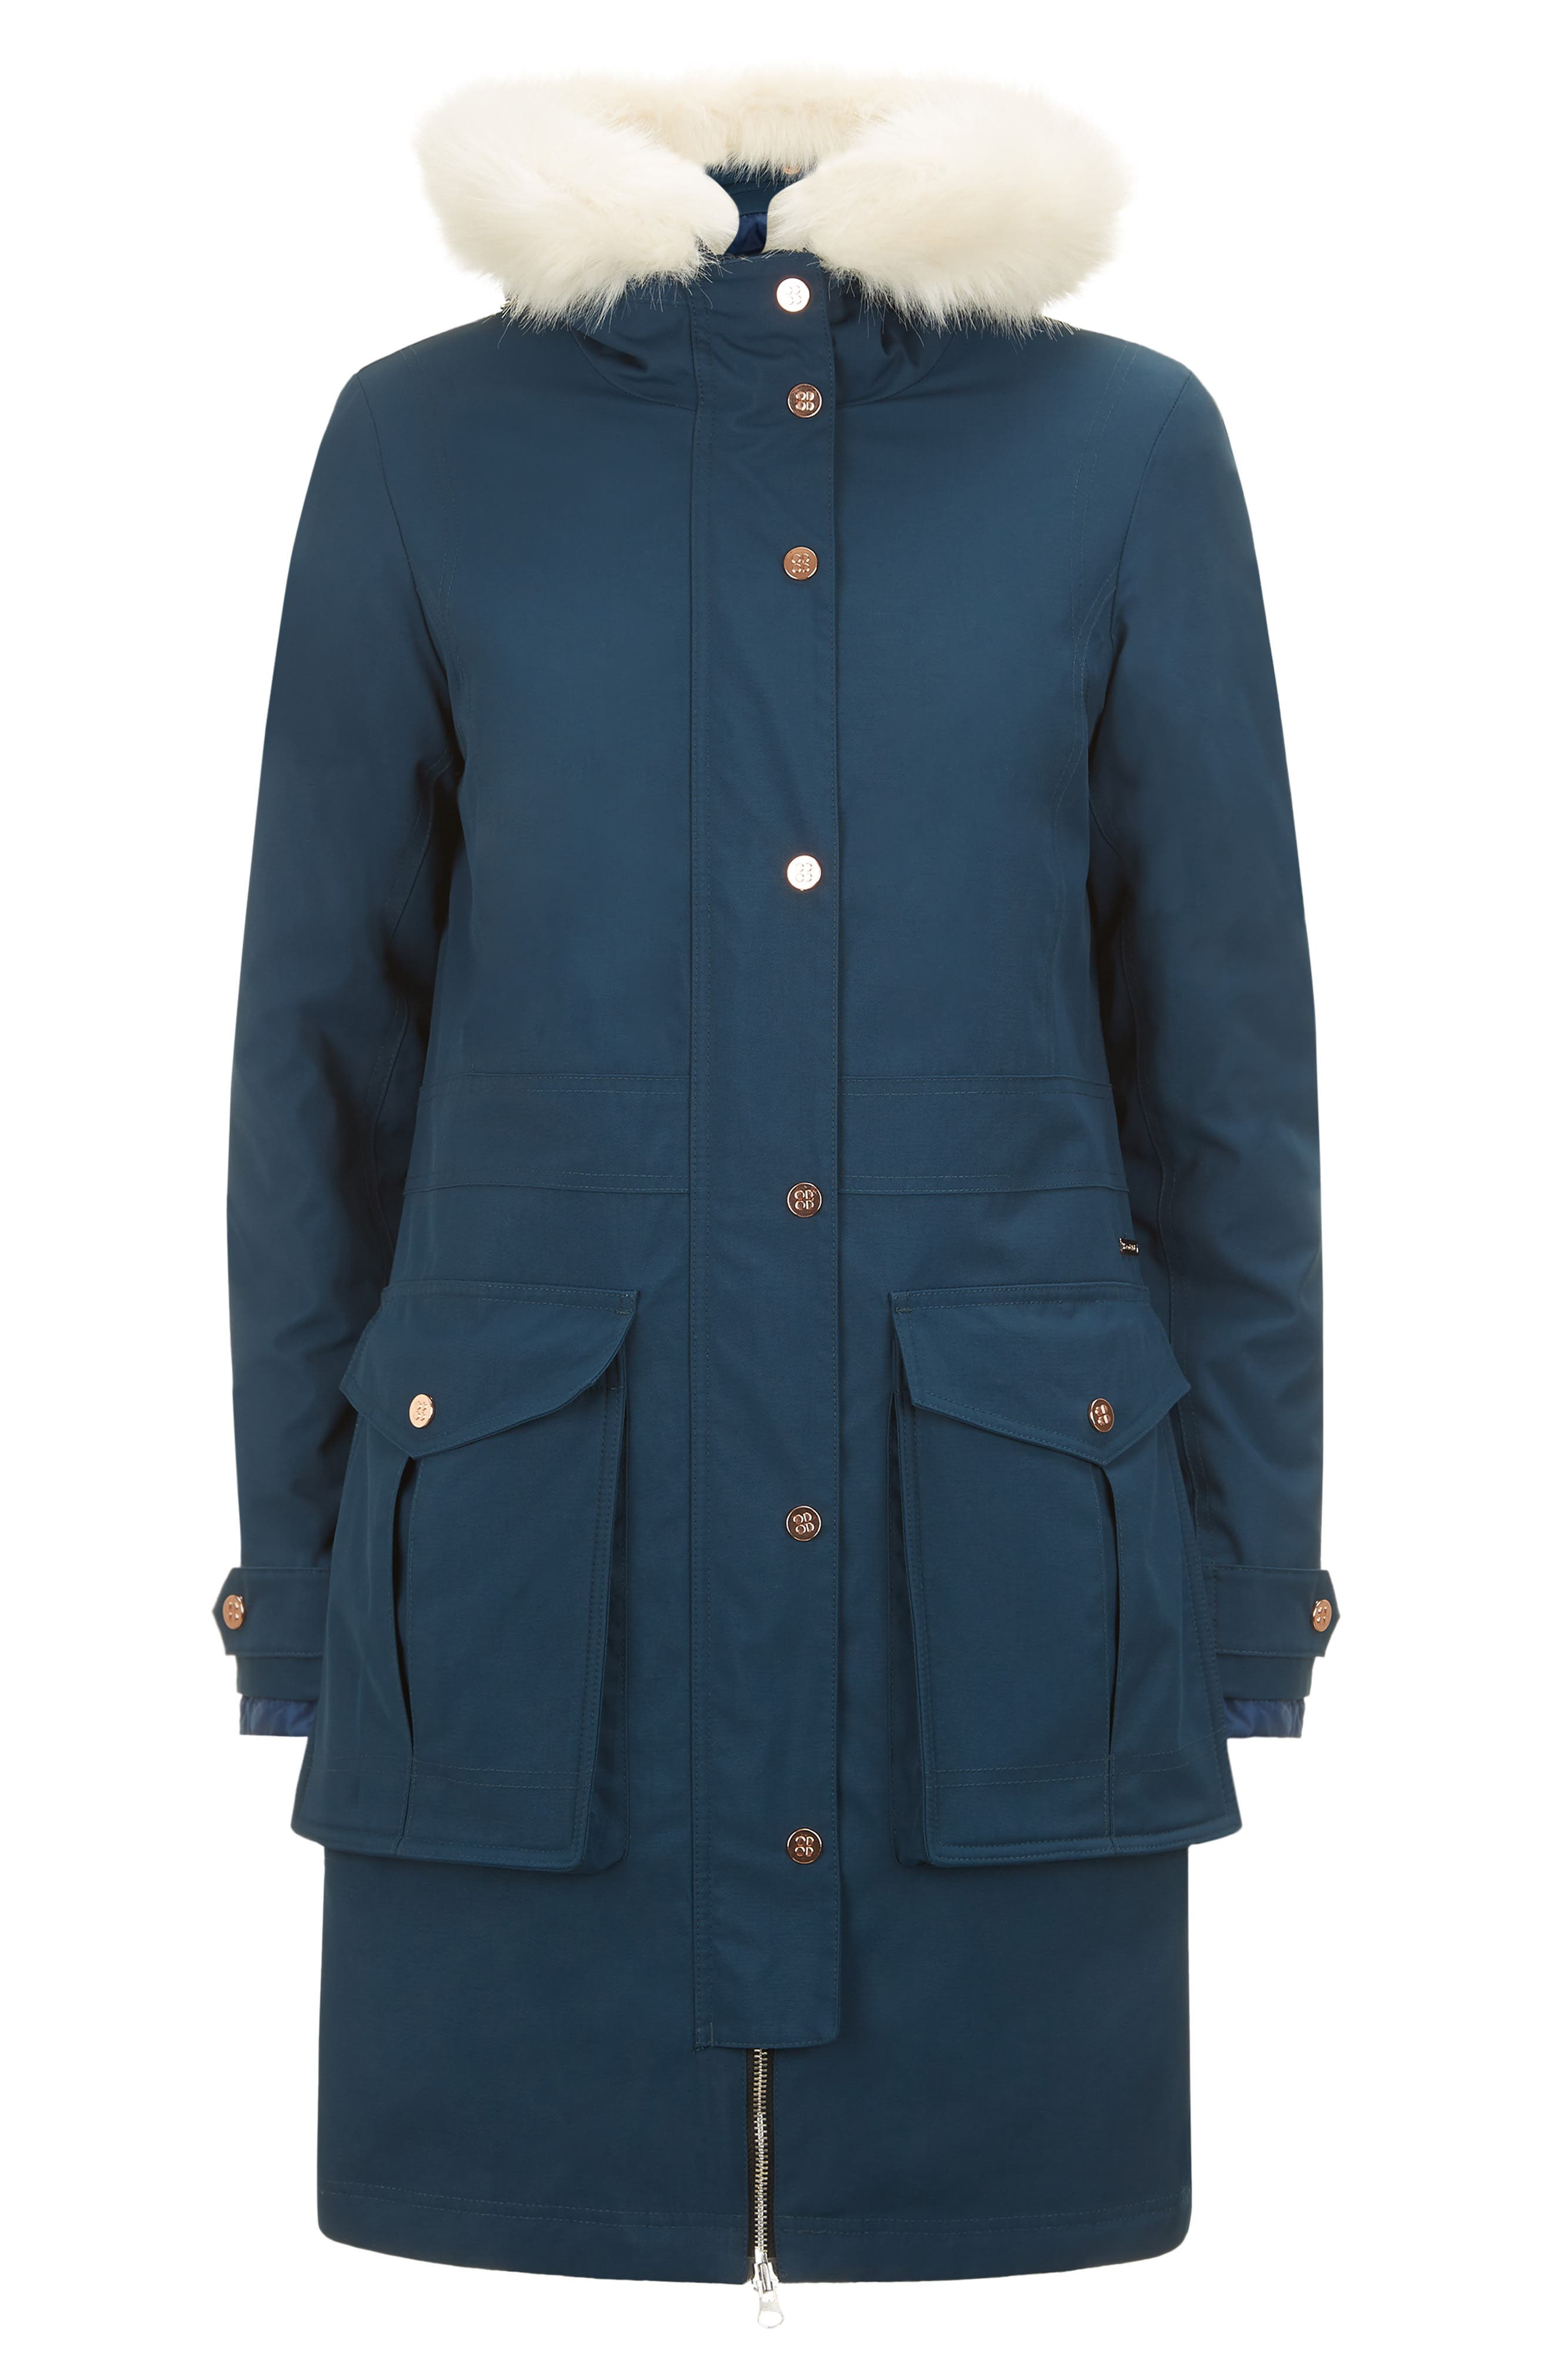 Highlands Three-In-One Faux Fur & Faux Shearling Coat,                             Alternate thumbnail 6, color,                             BEETLE BLUE